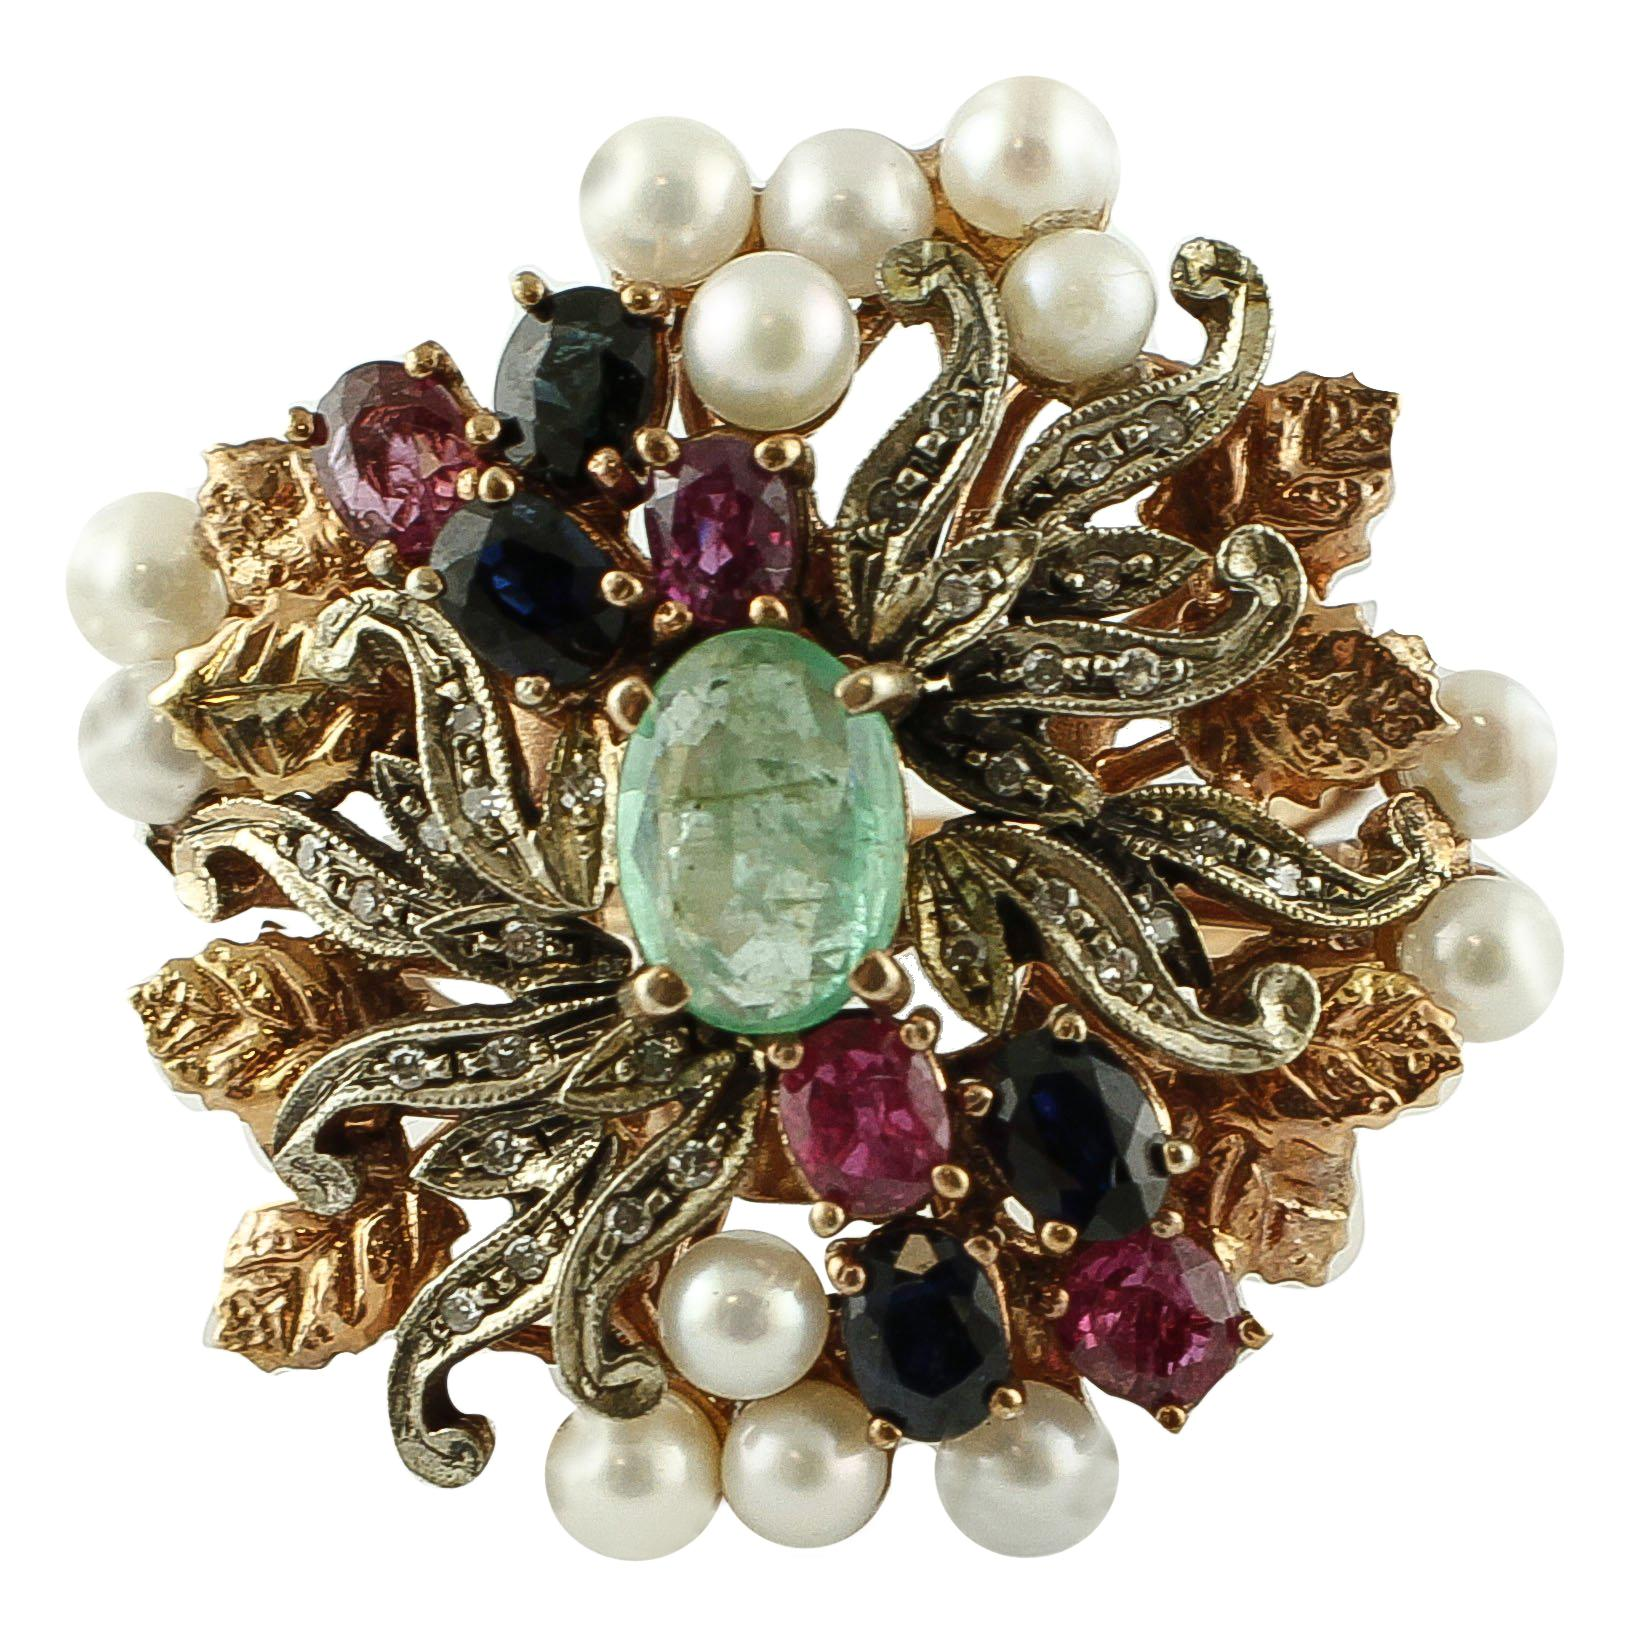 Emeralds Diamonds Rubies Blue Sapphires Pearls 9 Karat Rose Gold and Silver Ring